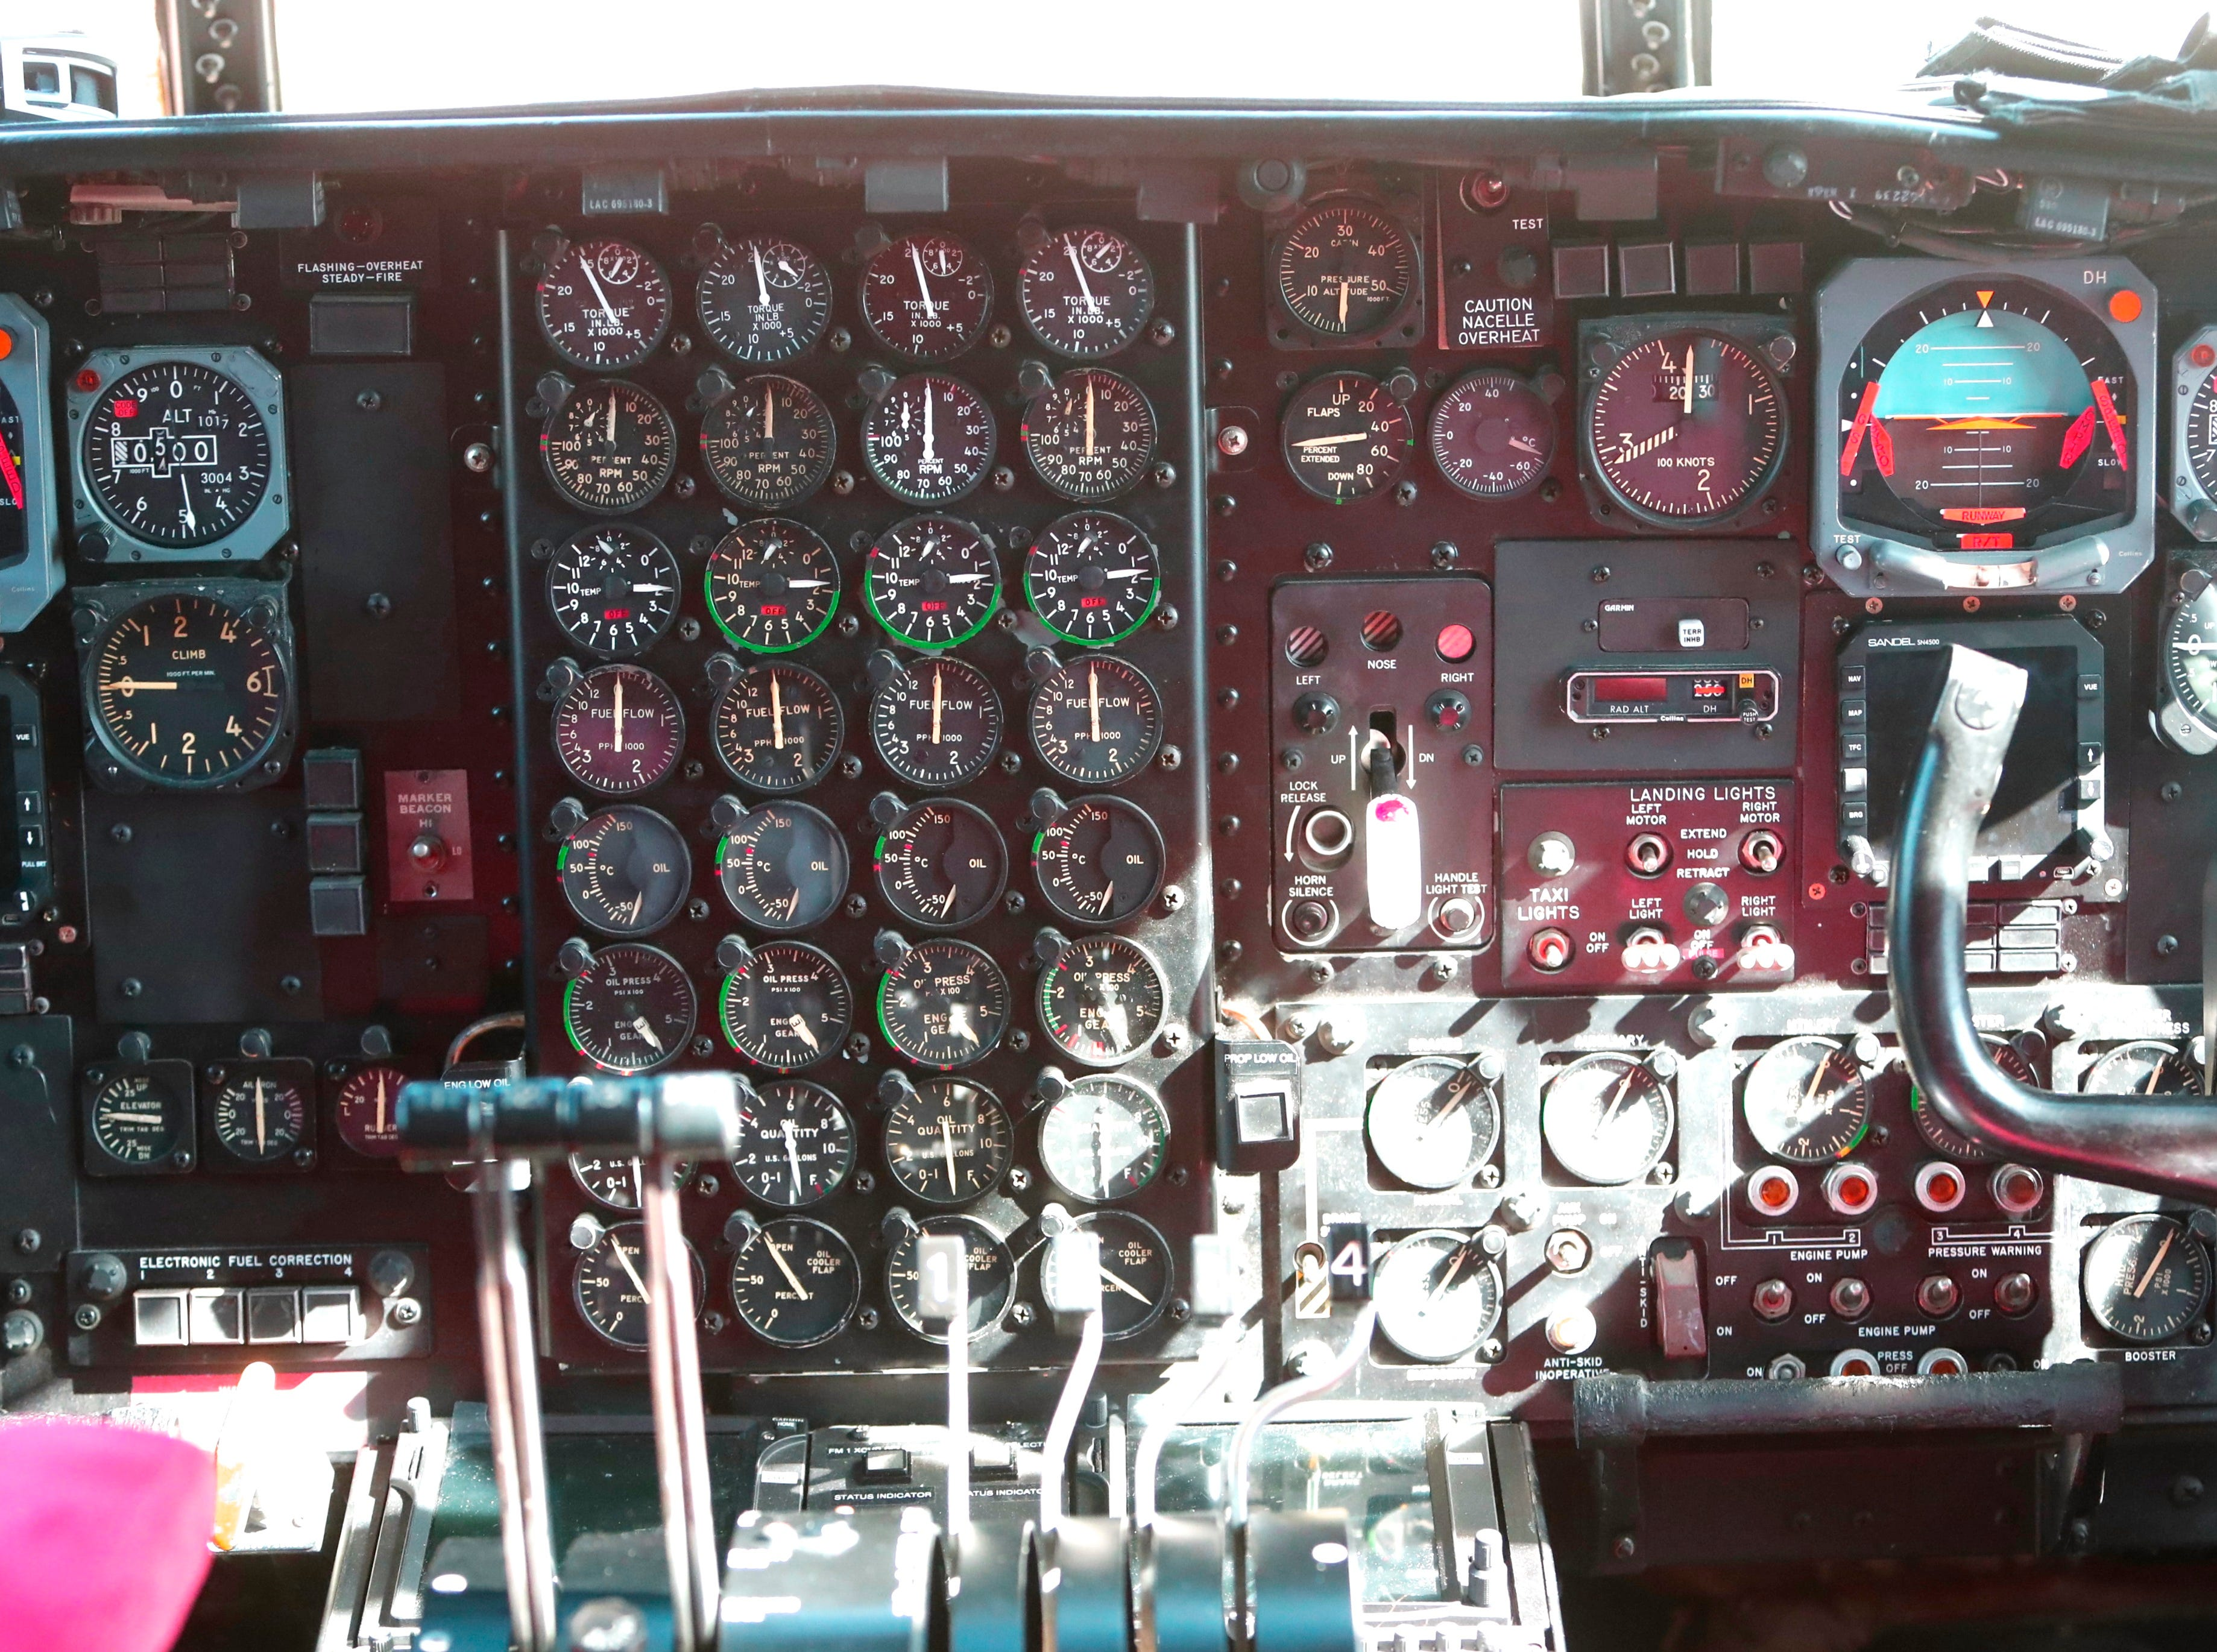 Instrument control panel in the cockpit of a retardant-dropping air tanker.